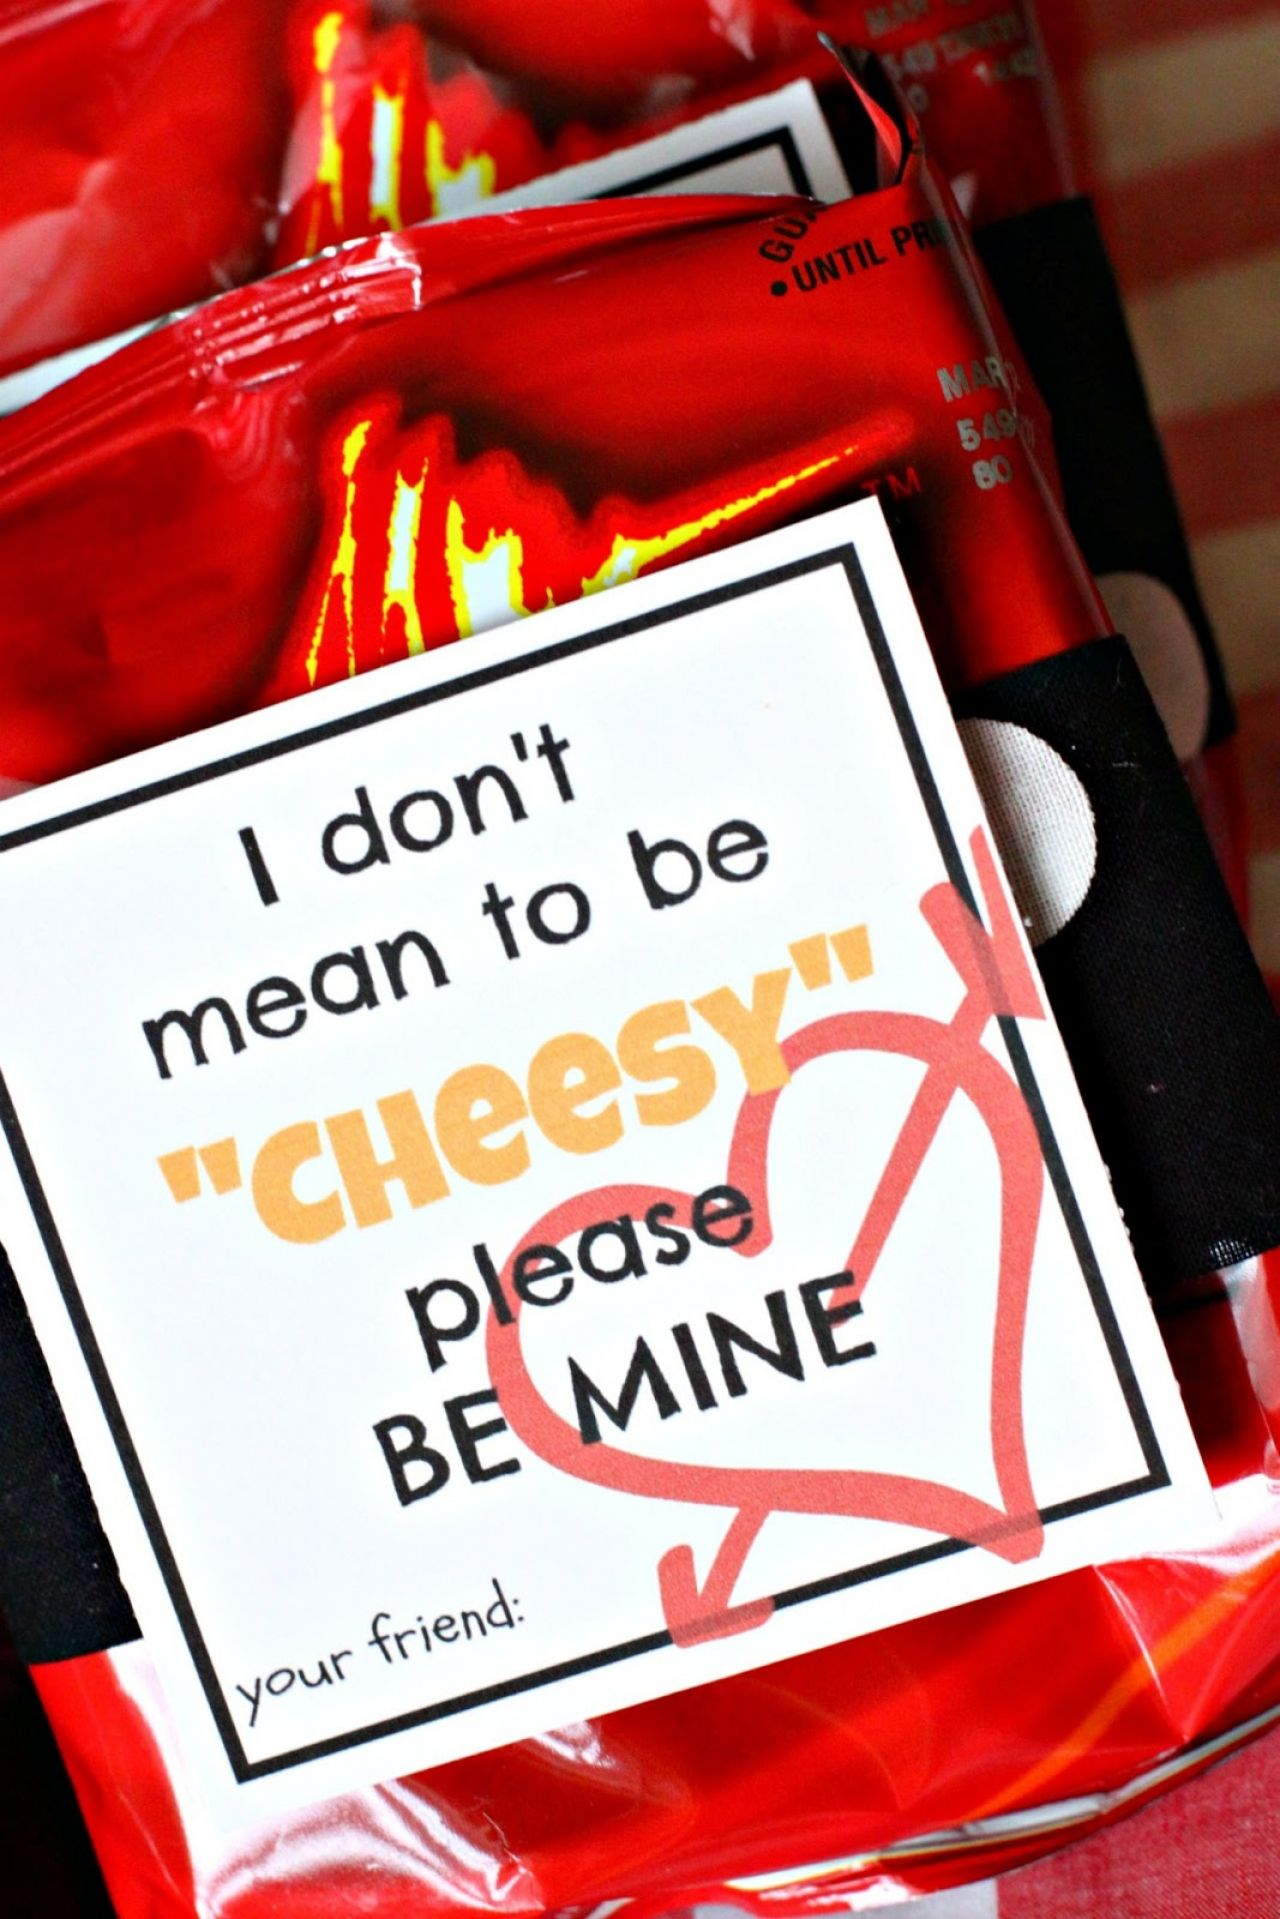 cheesy valentines day quotes - Cheesy Valentines Day Quotes QuotesGram